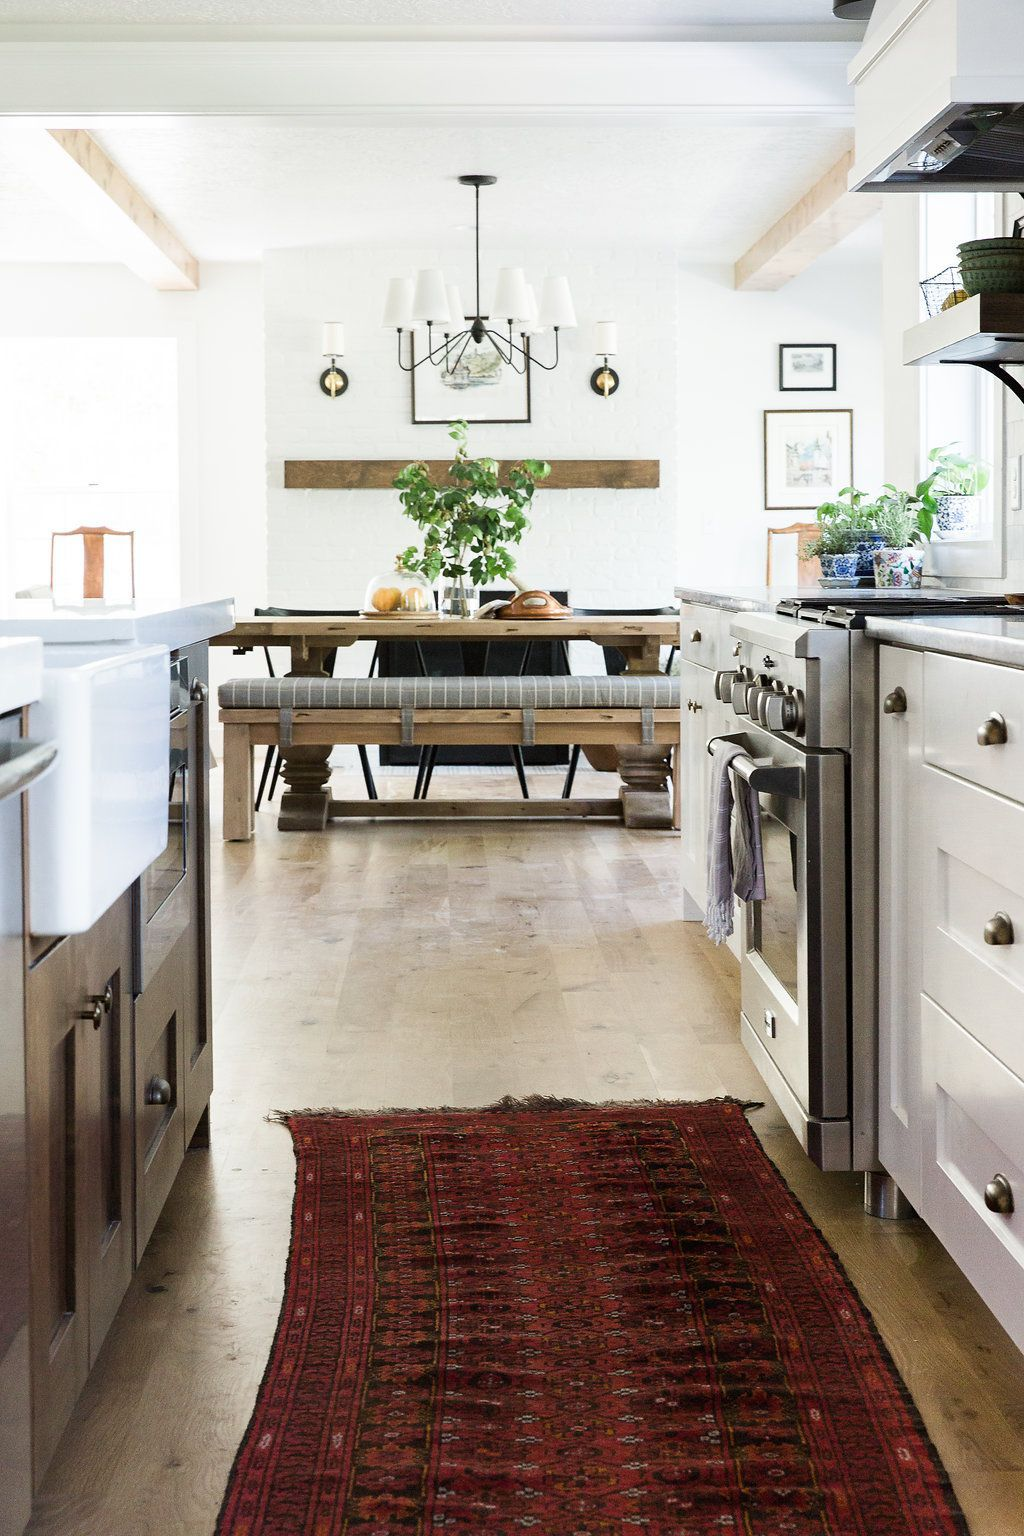 Amazing after alpine modern remodel kitchen dining and mudroom